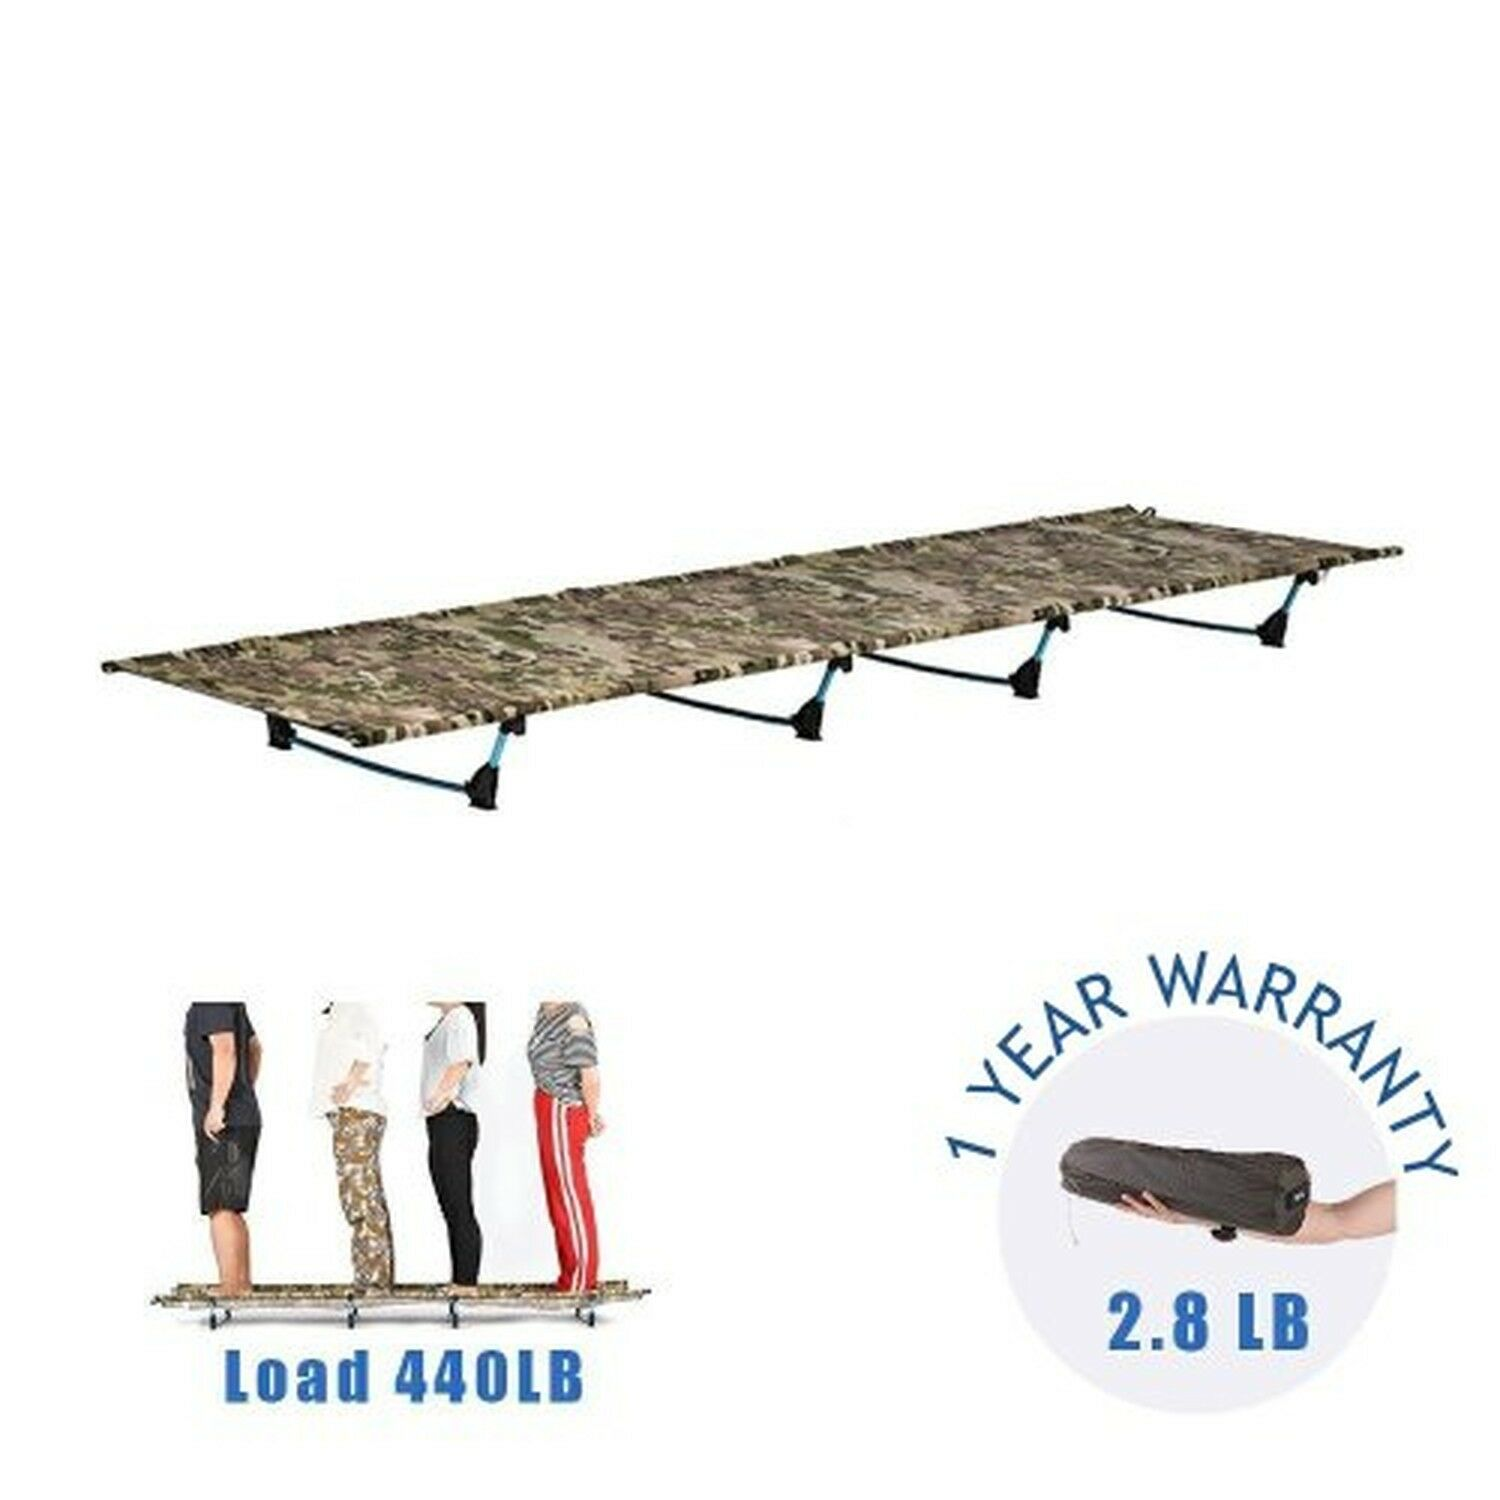 DESERT WALKER Camping  Cots, Outdoor Bed Ultra Lightweight Bed Portable cot Fr...  the latest models